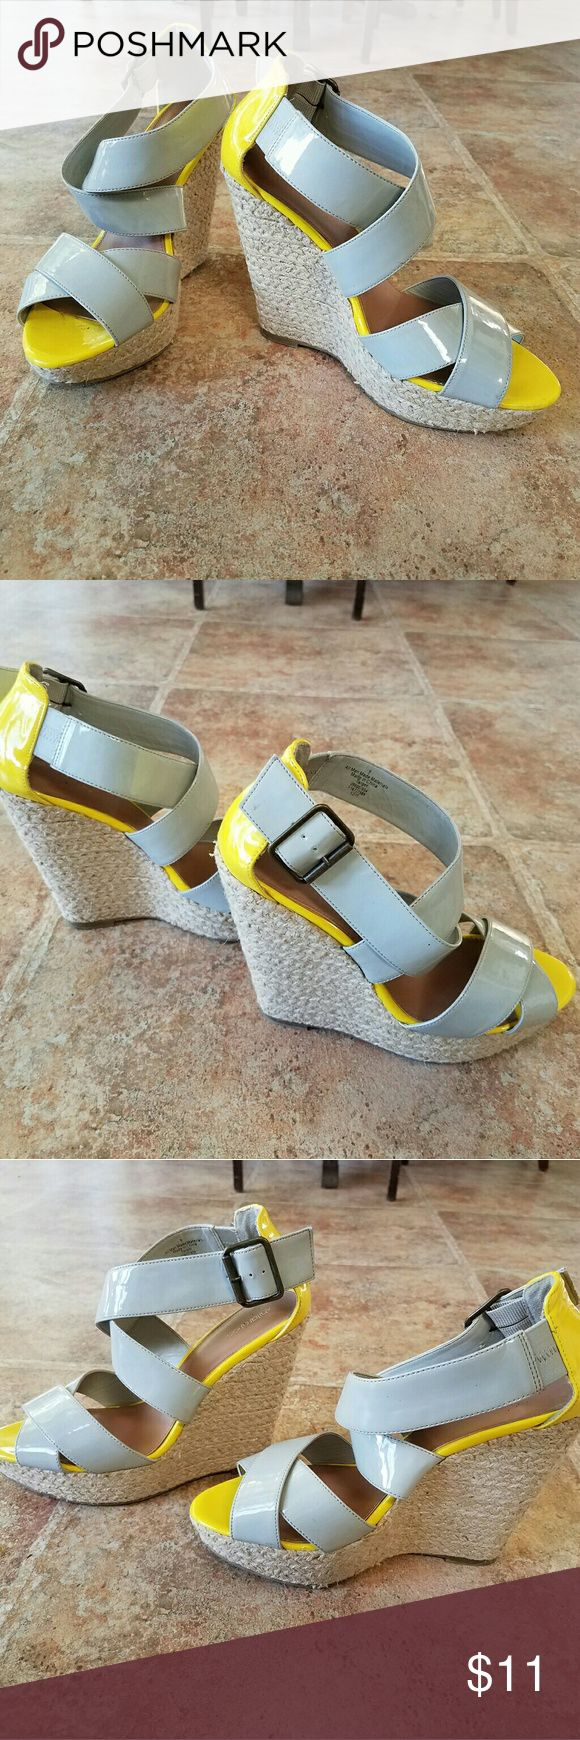 """Yellow & Gray Espadrille Sandals Platform Wedges Cute & sassy for Spring. Good condition platform espadrille wedge sandals. Vegan/man made. All flaws/scuffs are minor & representive of what is shown in last pic. Heel height is approx 5"""". Front lift is approx 1"""". Size 9. By Xhilaration. Selling because I bought them on Posh as props for covetshots, but we're unexpectedly making a cross-country move. I would like to pass them along to a new owner before the move.   Bundle for a discount & 1…"""